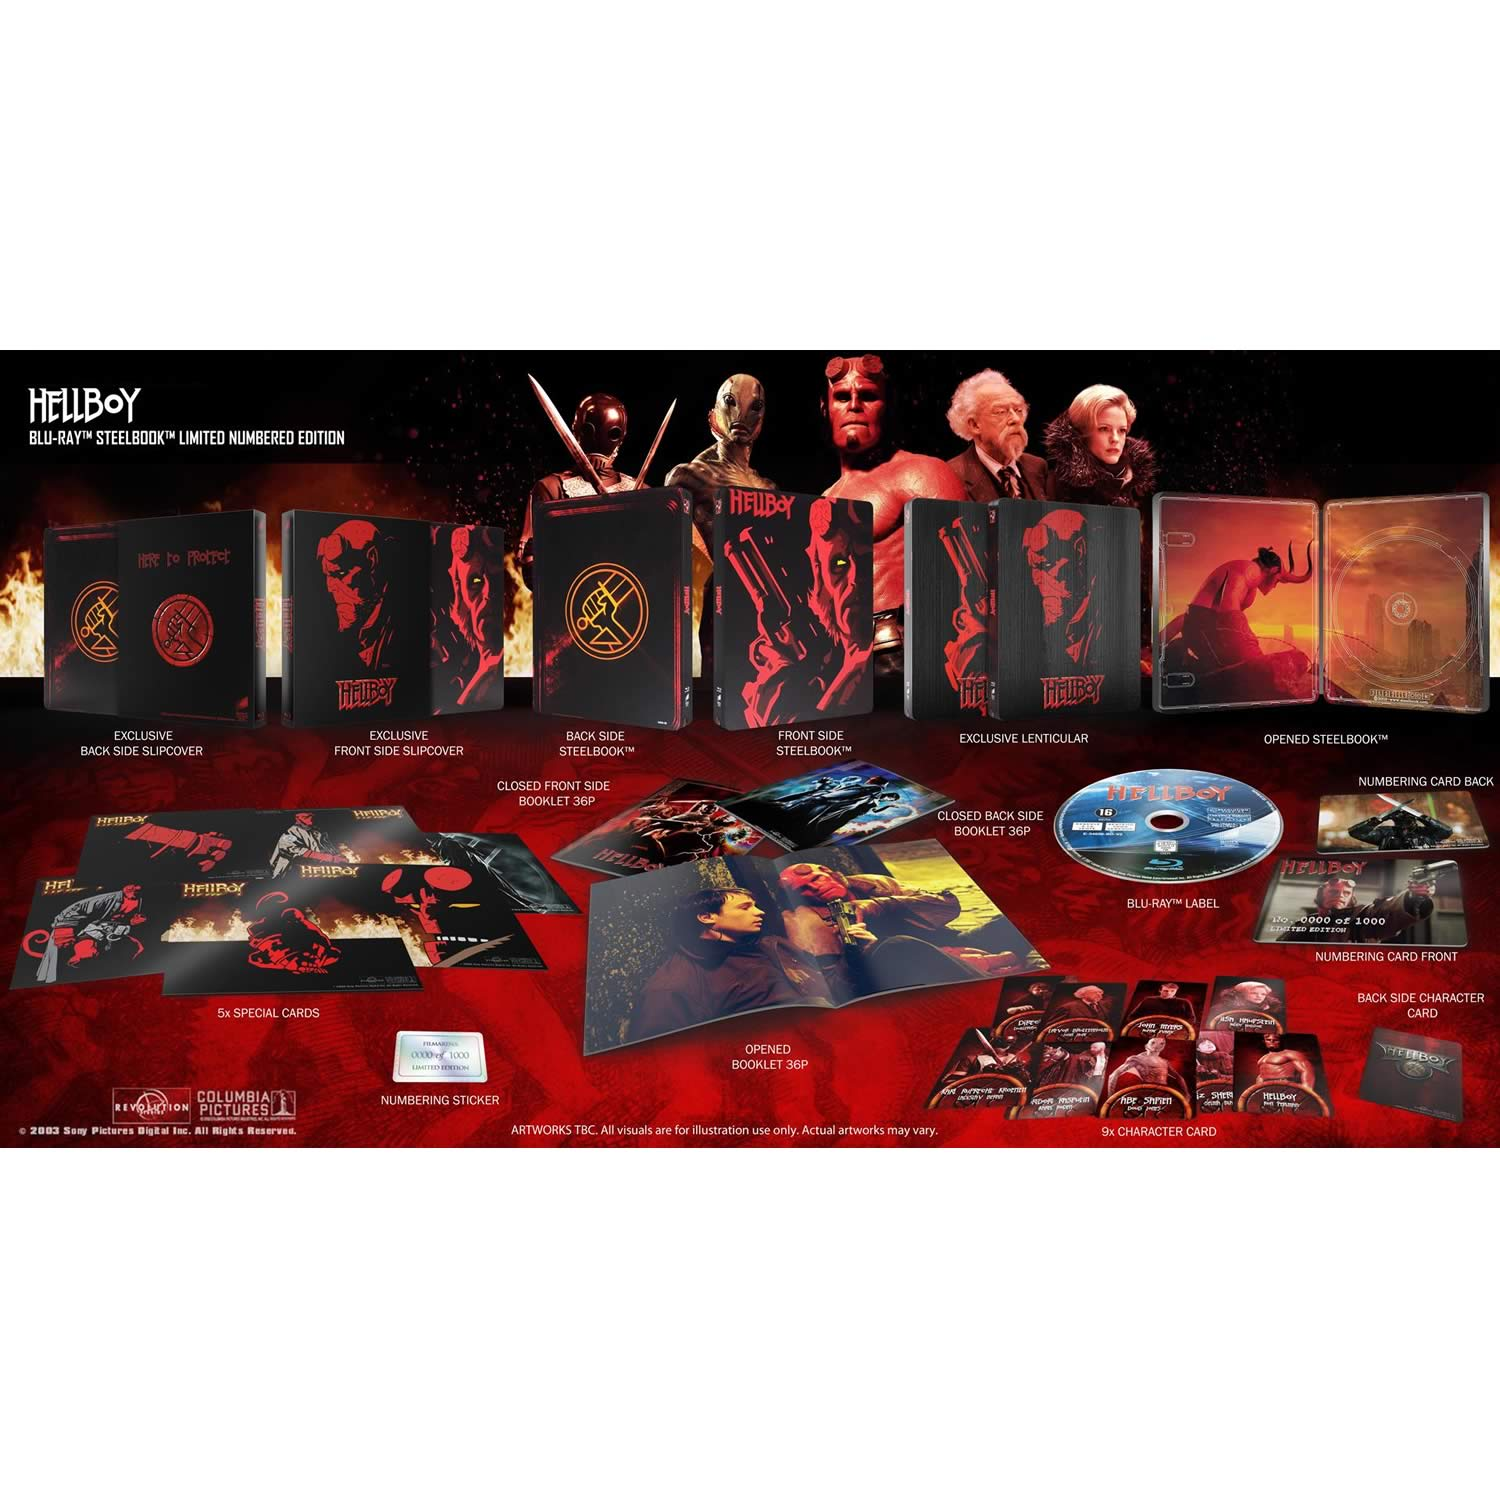 HELLBOY - Ο ΗΡΩΑΣ ΤΗΣ ΚΟΛΑΣΗΣ Limited Collector's Numbered Edition Steelbook + BOOKLET + CARDS (BLU-RAY)